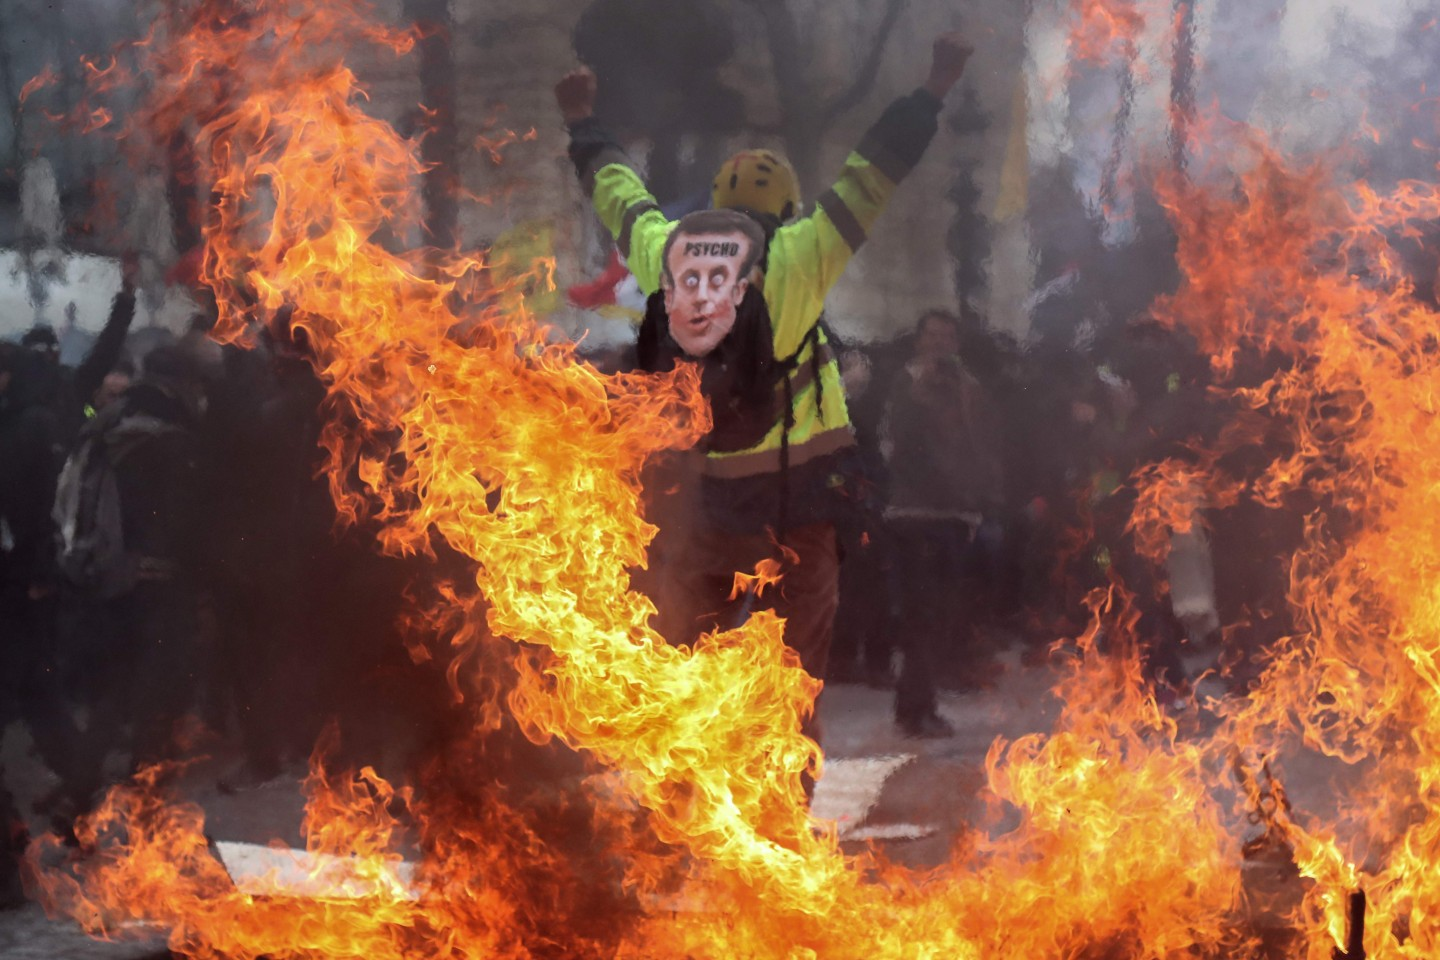 """A Yellow Vest protester wearing a mask depicting the French President on which is written 'psycho', gestures behind flames rising from barricades, in Paris on March 16, 2019, during the 18th consecutive Saturday of demonstrations called by the 'Yellow Vest' (gilets jaunes) movement. - Demonstrators hit French city streets again on March 16, for a 18th consecutive week of nationwide protest against the French President's policies and his top-down style of governing, high cost of living, government tax reforms and for more """"social and economic justice."""" (Photo by Zakaria ABDELKAFI / AFP)"""